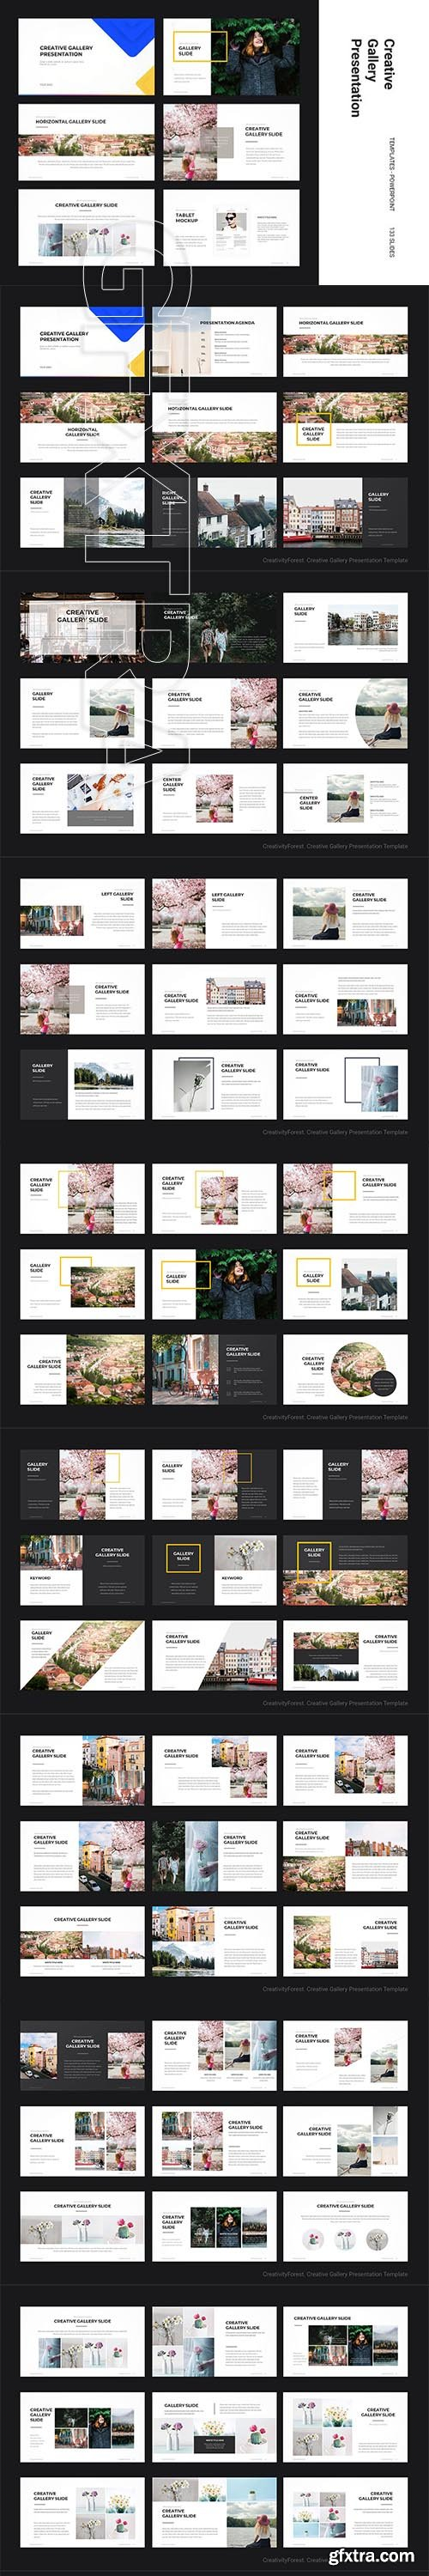 Presentation templates page 3 creativemarket creative gallery powerpoint template 2824603 toneelgroepblik Image collections